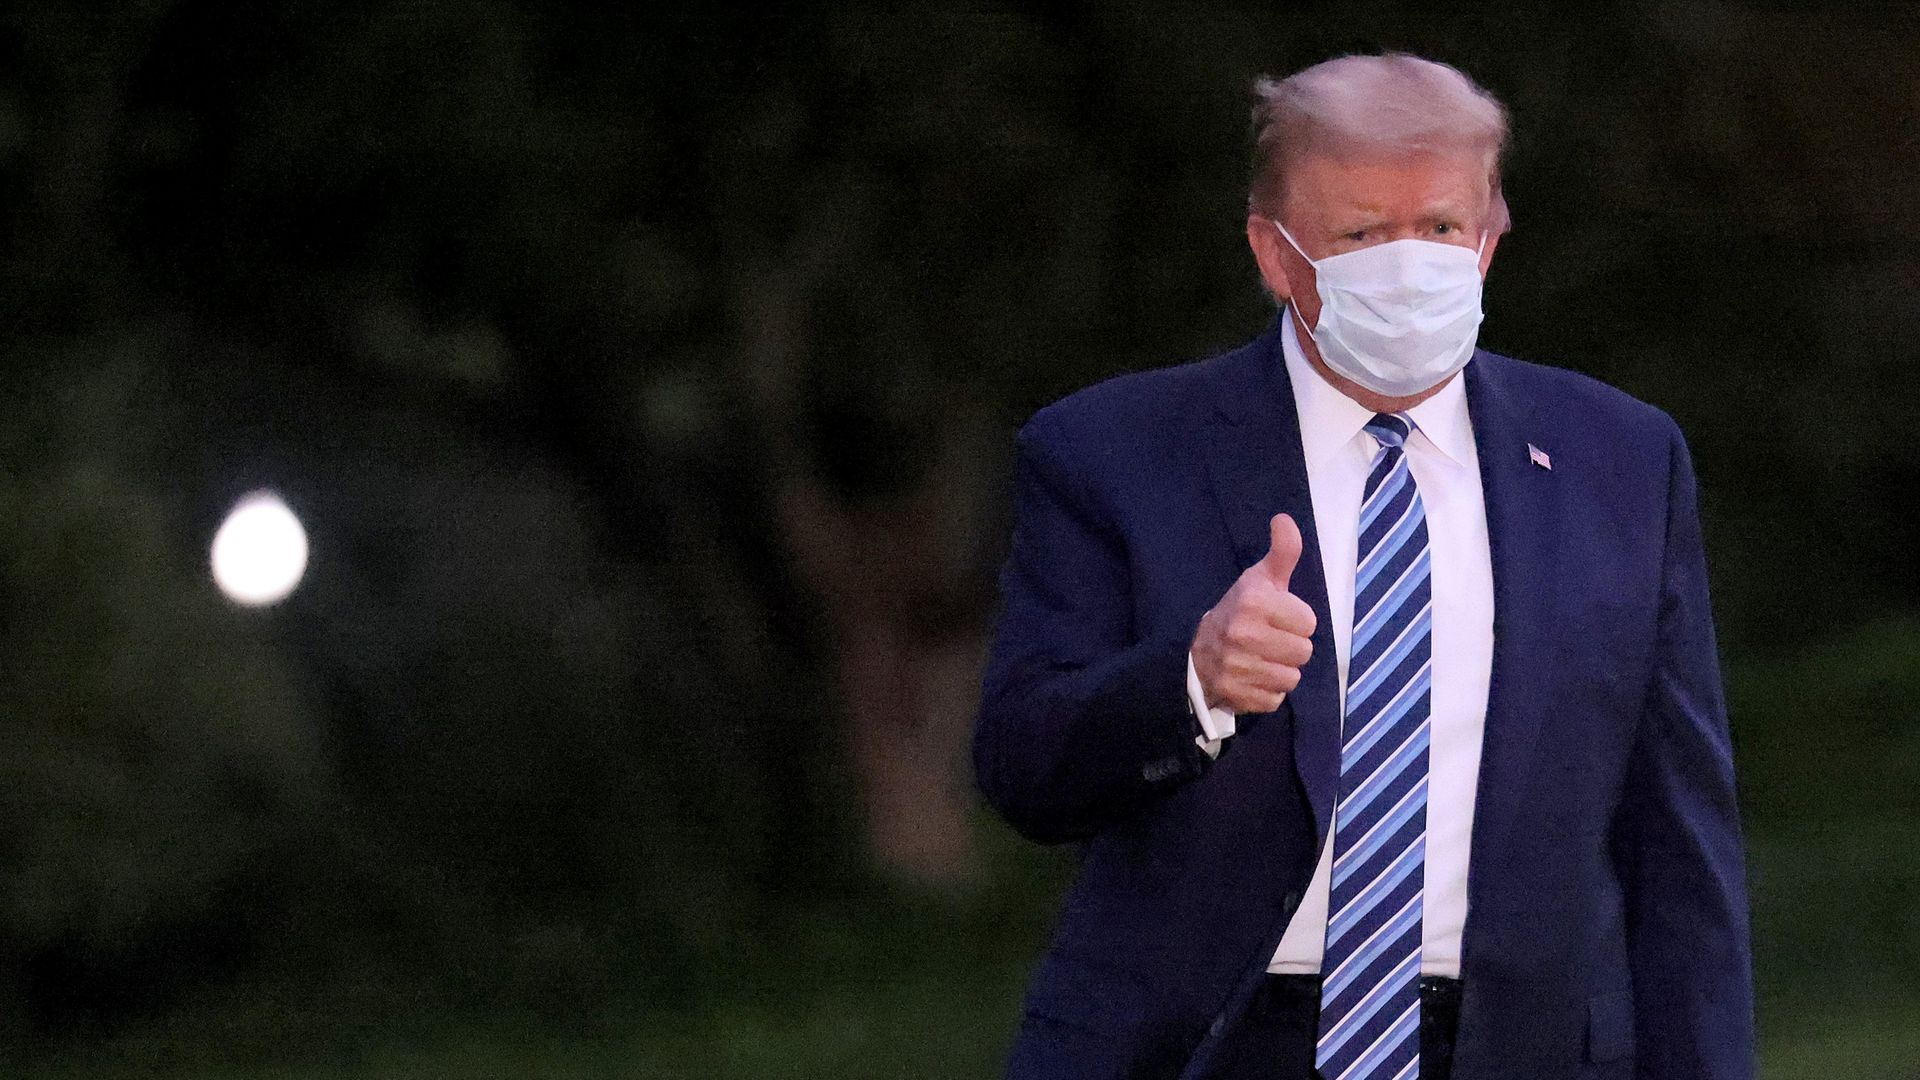 Donald Trump gestures upon return to the White House after his bout of coronavirus - Credit: Getty Images